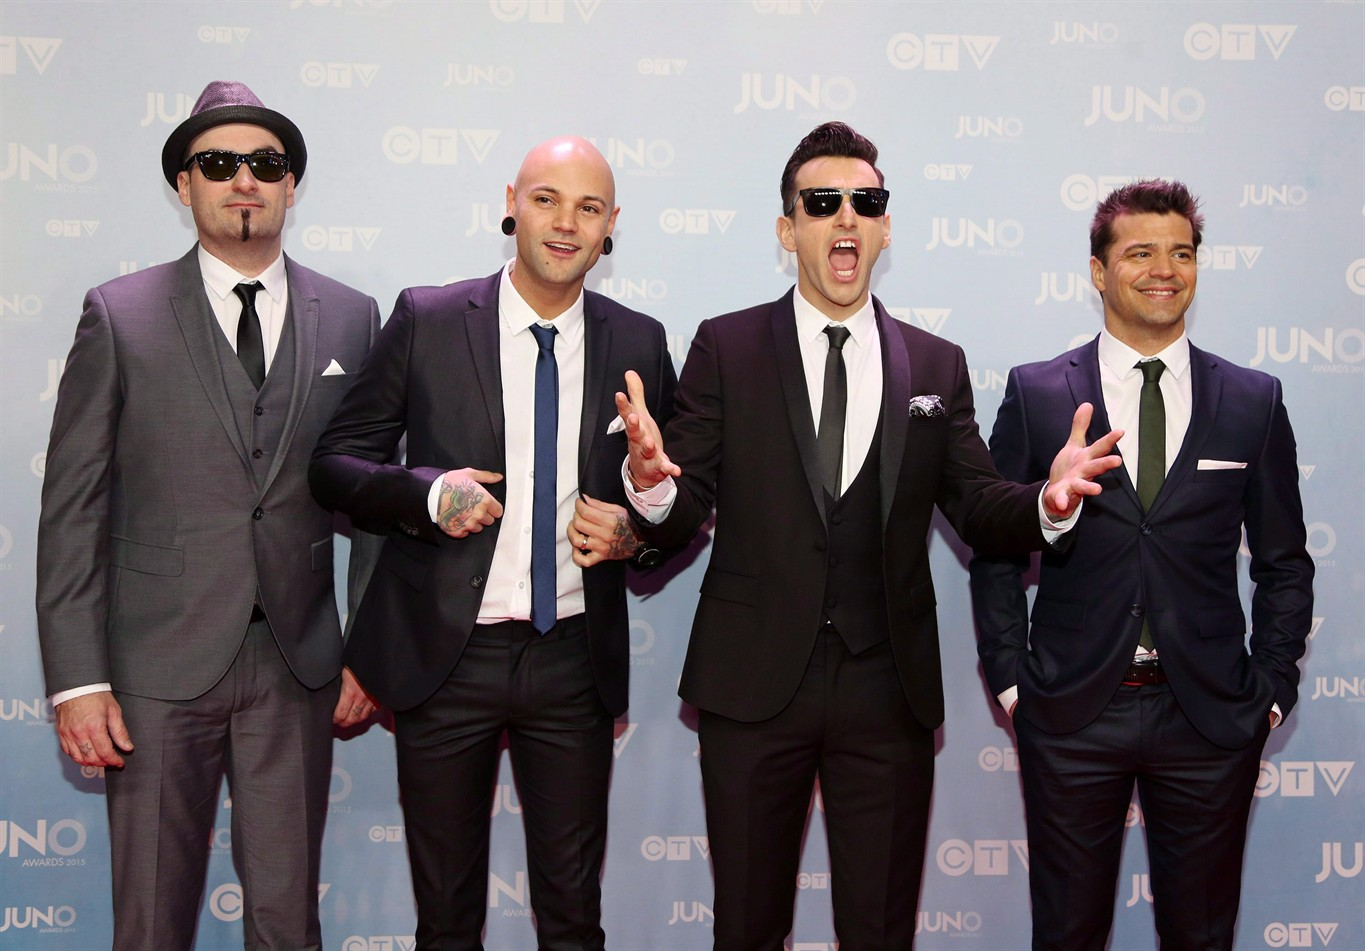 Hedley concerts in Hamilton, St. Catharines still on amid allegations